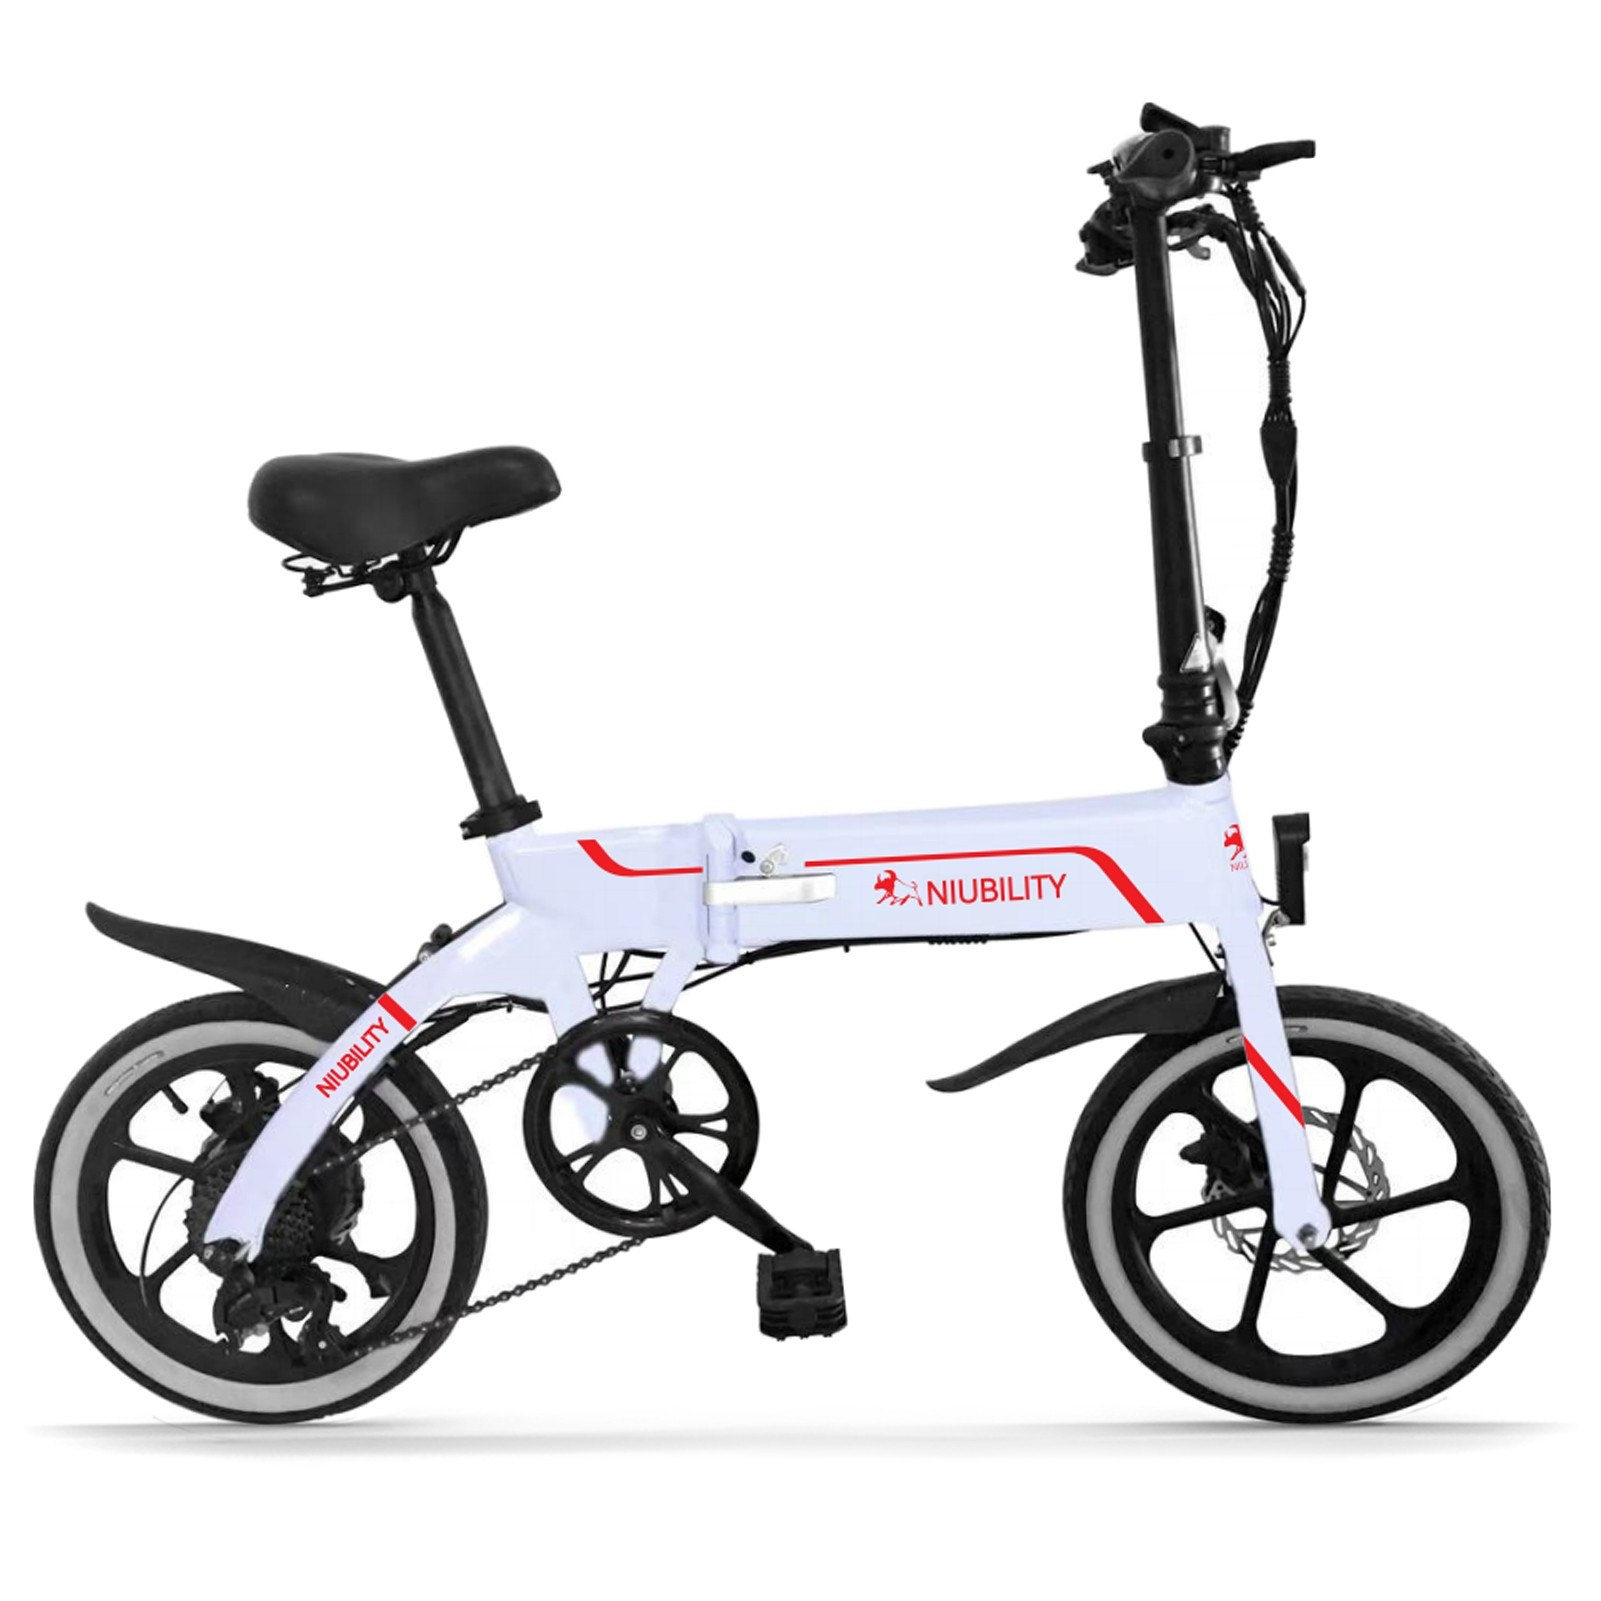 Tomtop - [EU Warehouse] $260 OFF Niubility B16 16 Inch Folding Electric Bicycle 350W 10.4Ah, Free Shipping $639 (Inclusive of VAT)